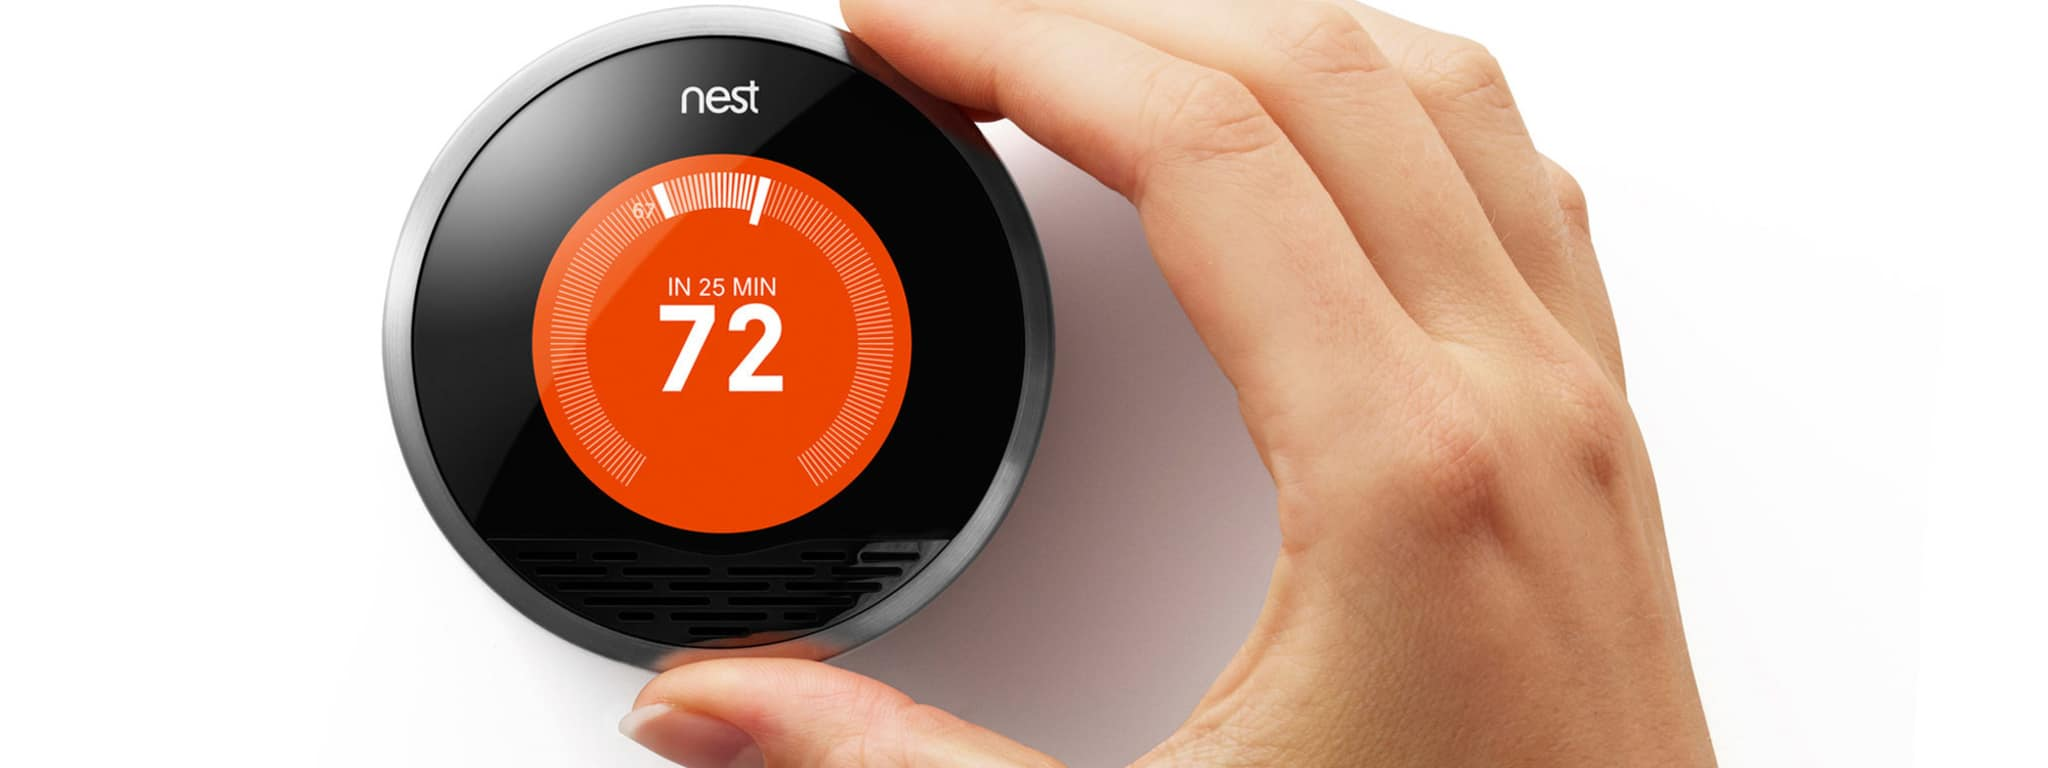 Smart home automation - the Nest Egg thermostat | HWG Blog